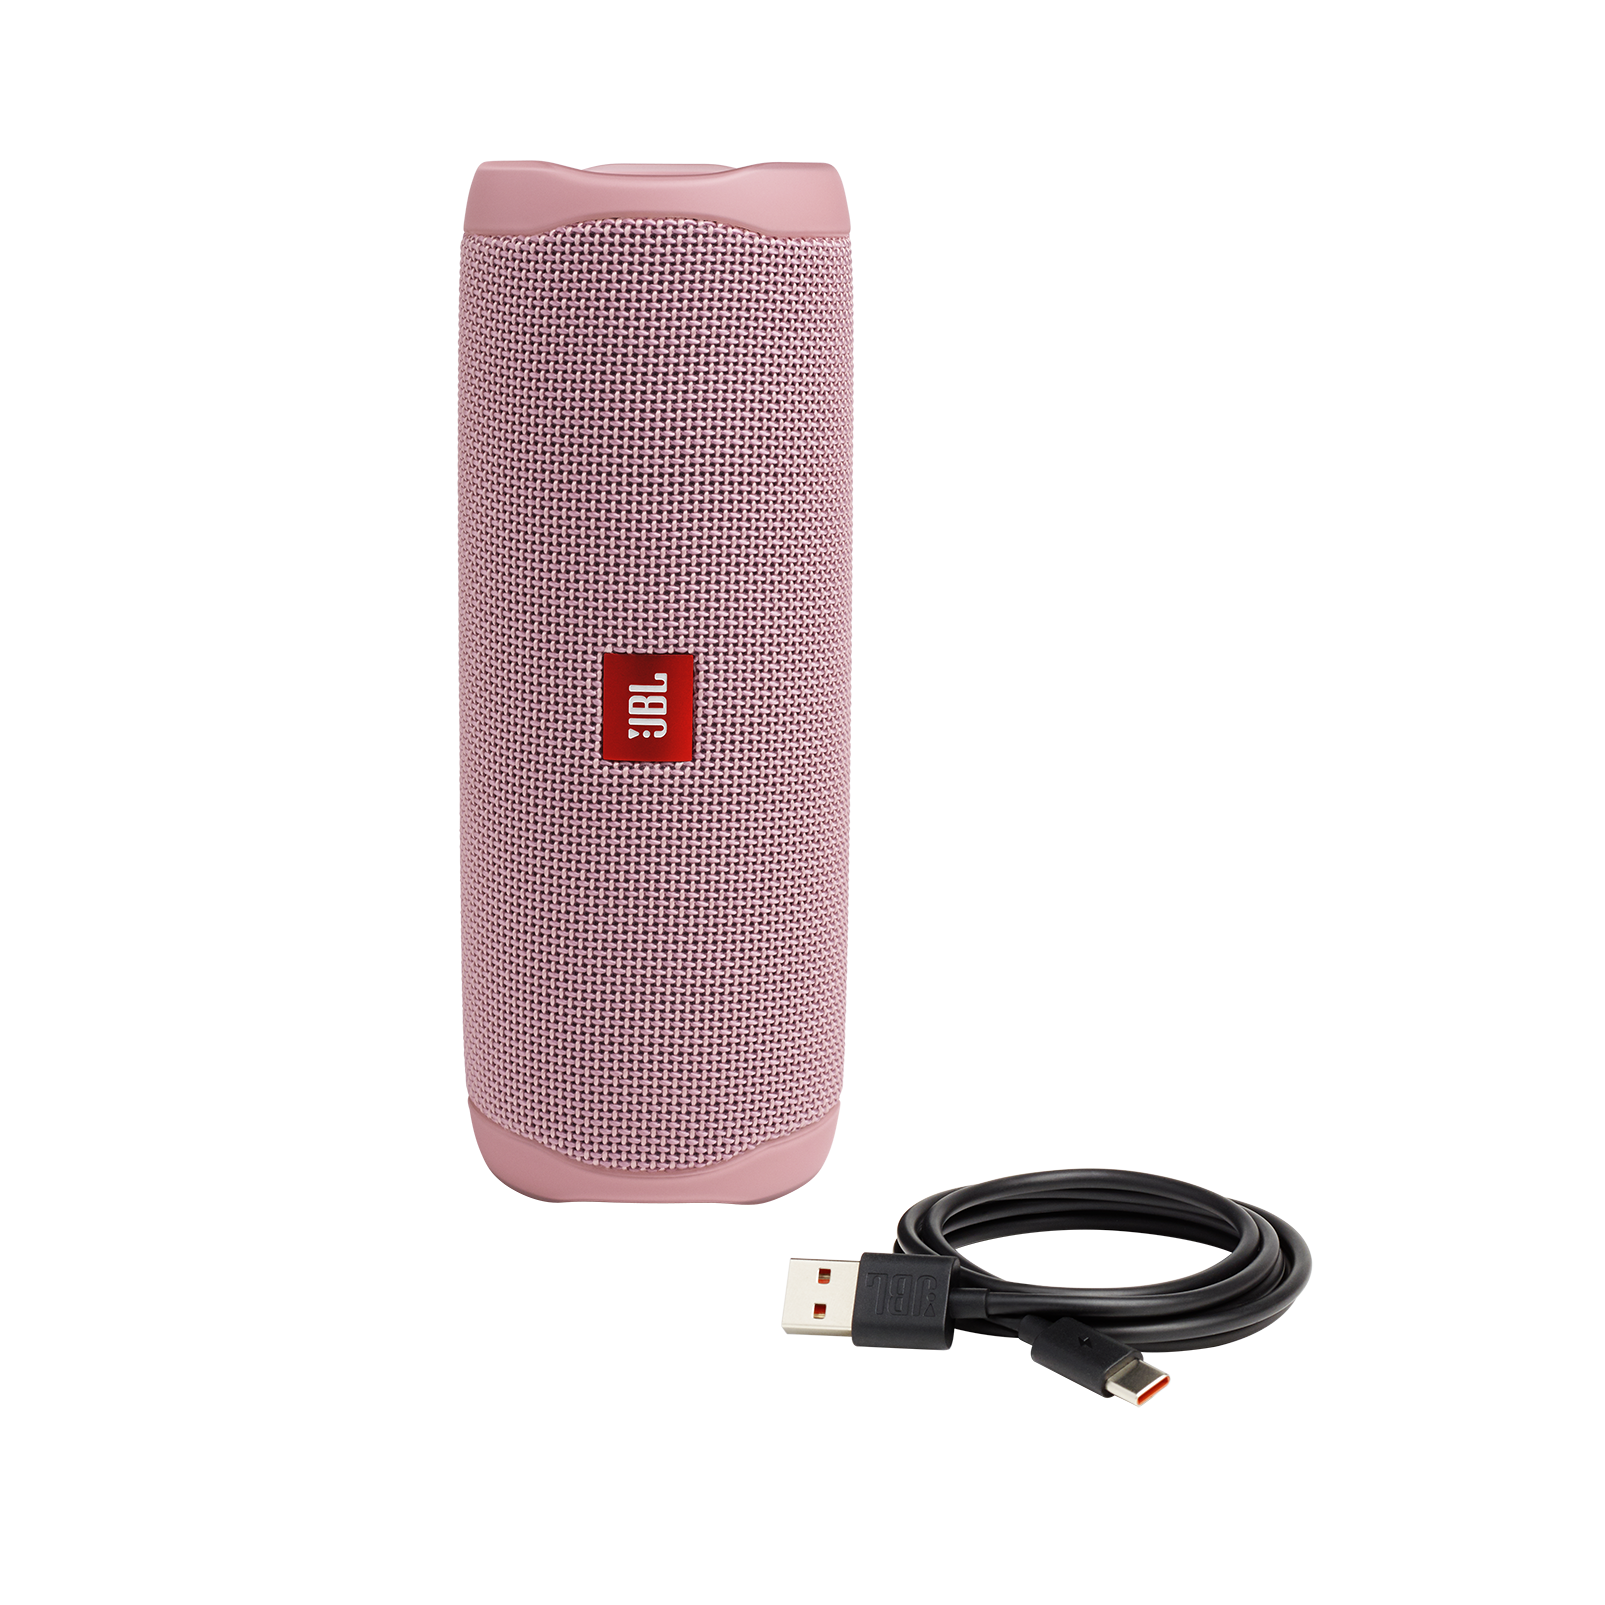 JBL FLIP 5 - Pink - Portable Waterproof Speaker - Detailshot 1